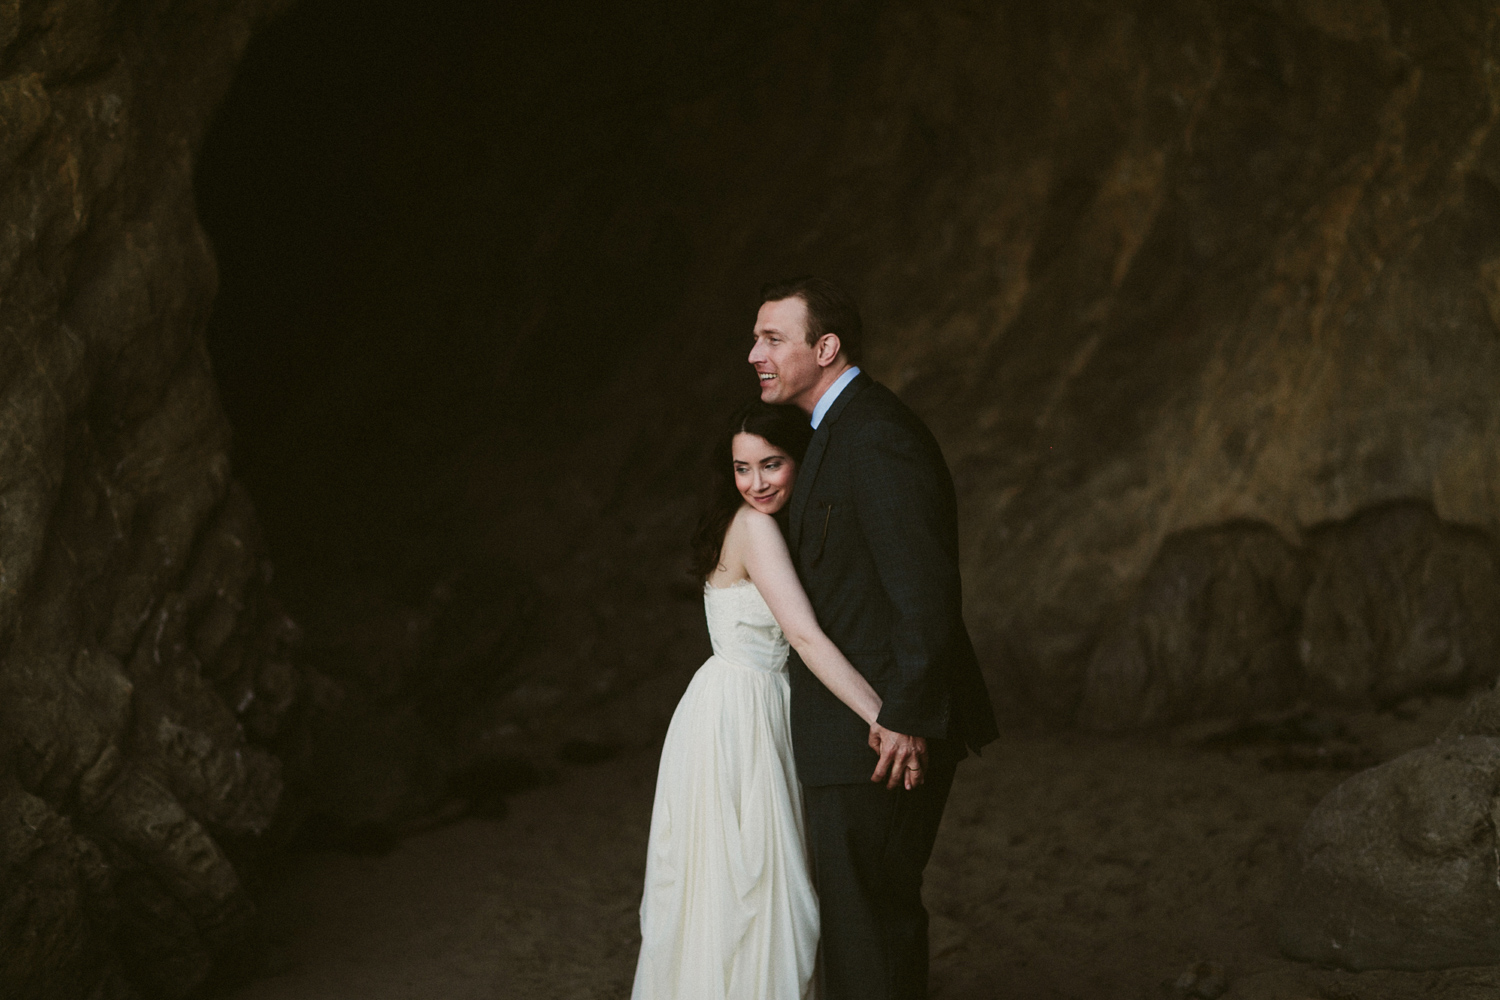 Malibu adventure anniversary session